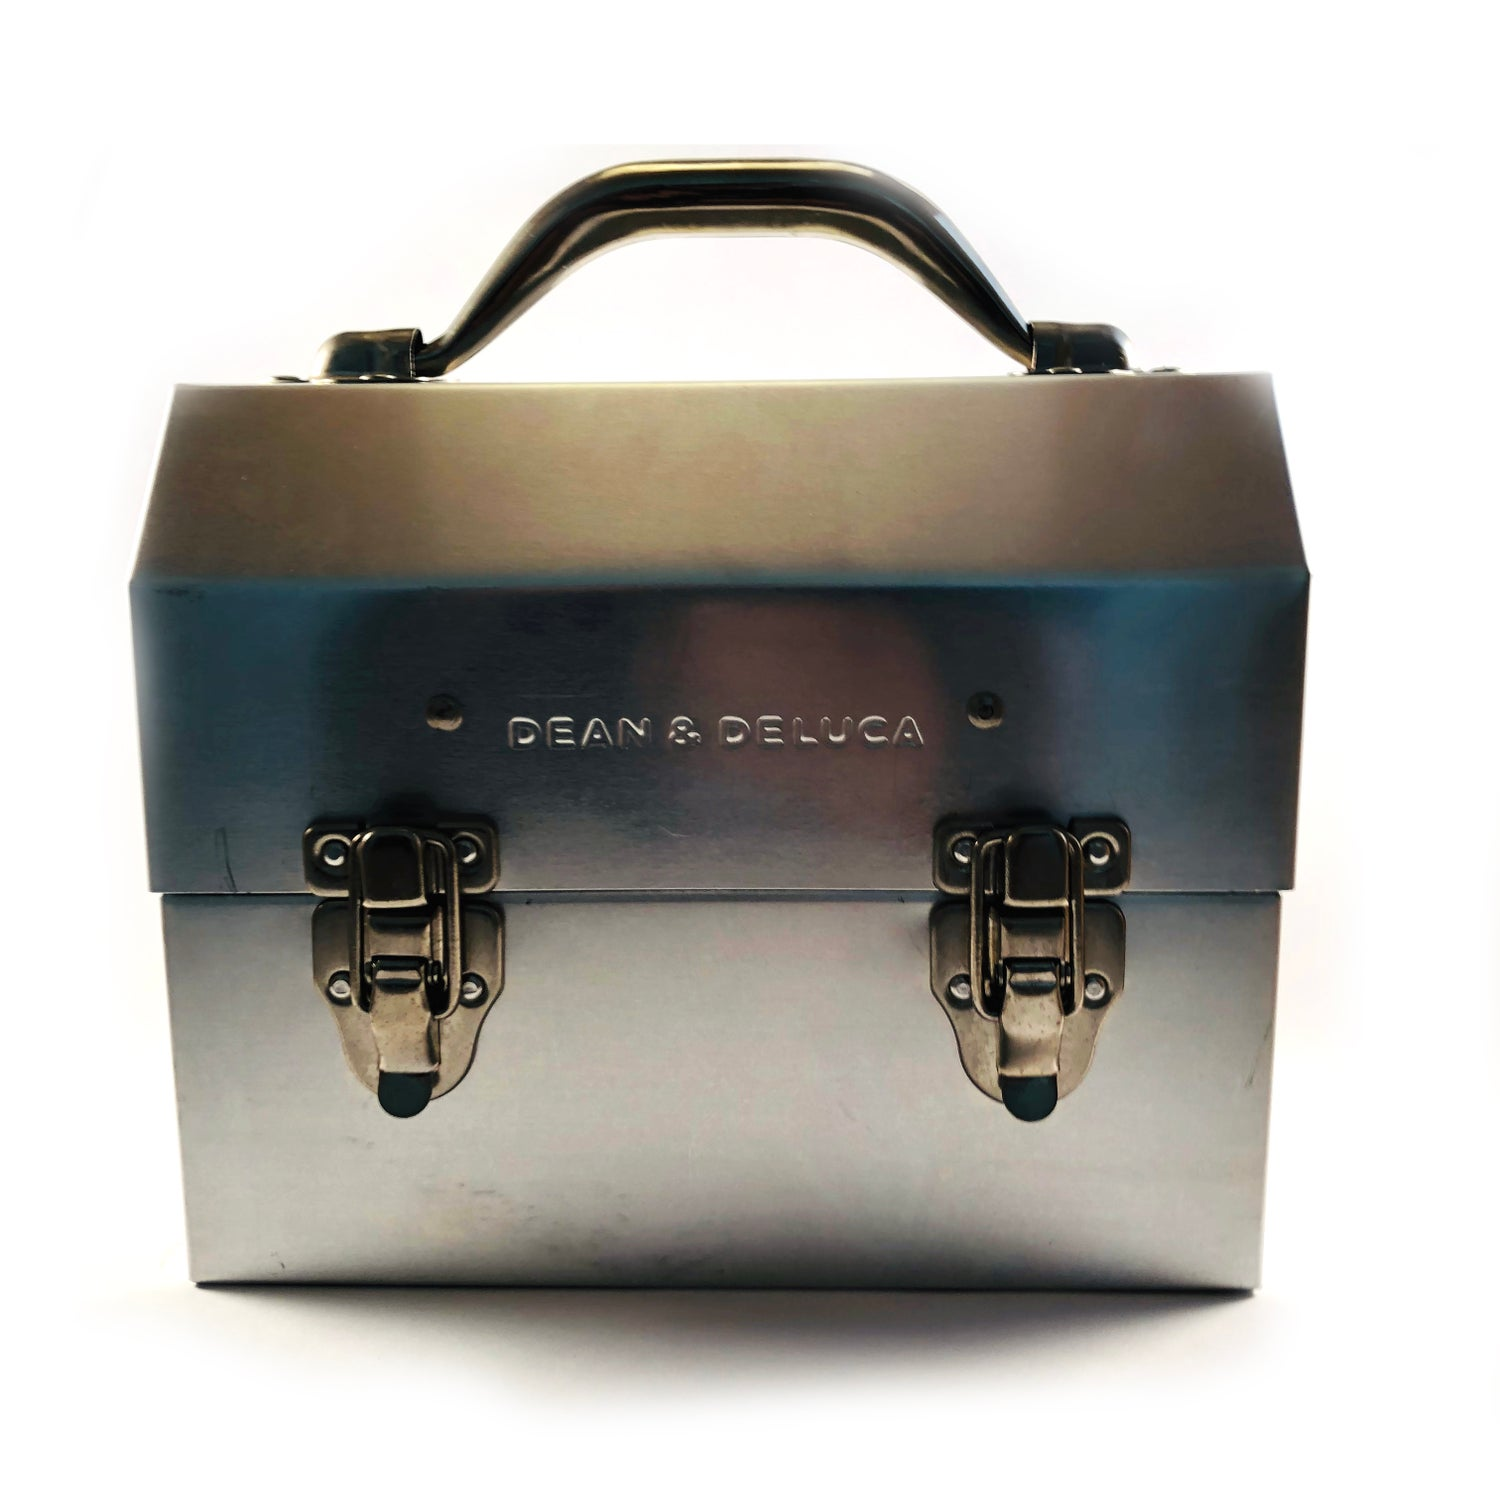 Image of Dean & Deluca Lunchbox